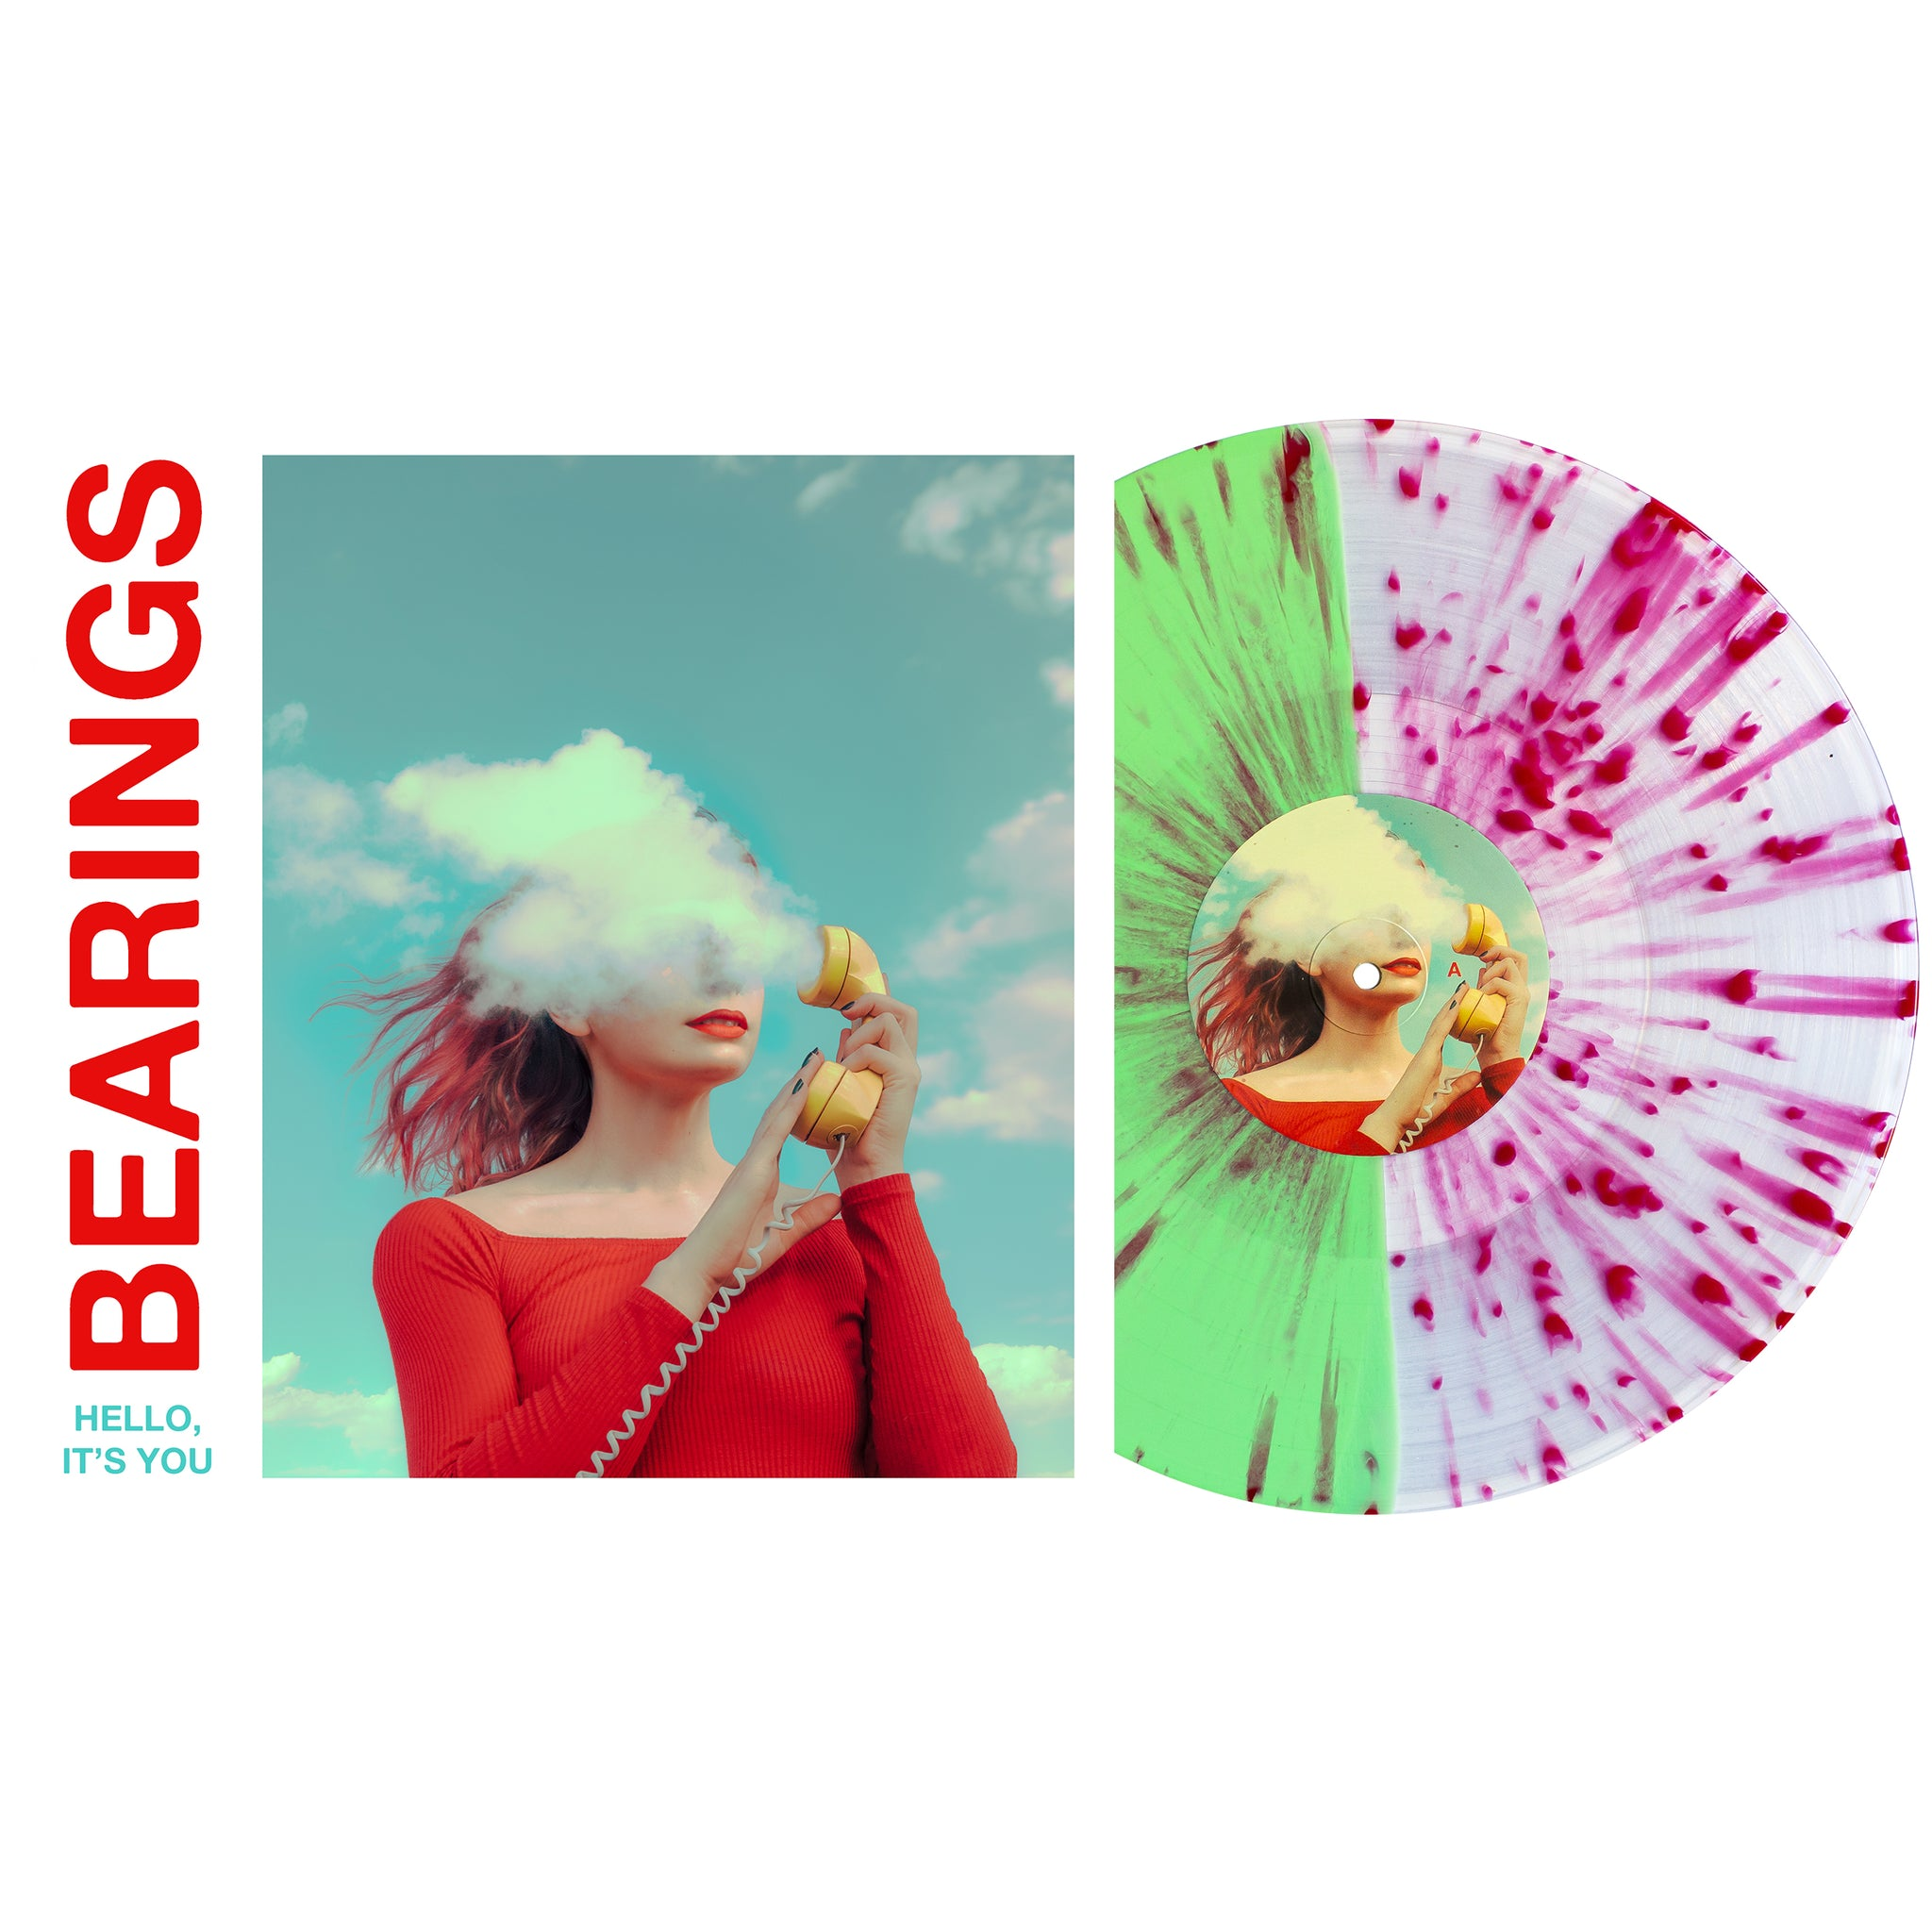 Bearings 'Hello, It's You' Various - Half Ultra clear / half mint w/ heavy Red(ish) splatter